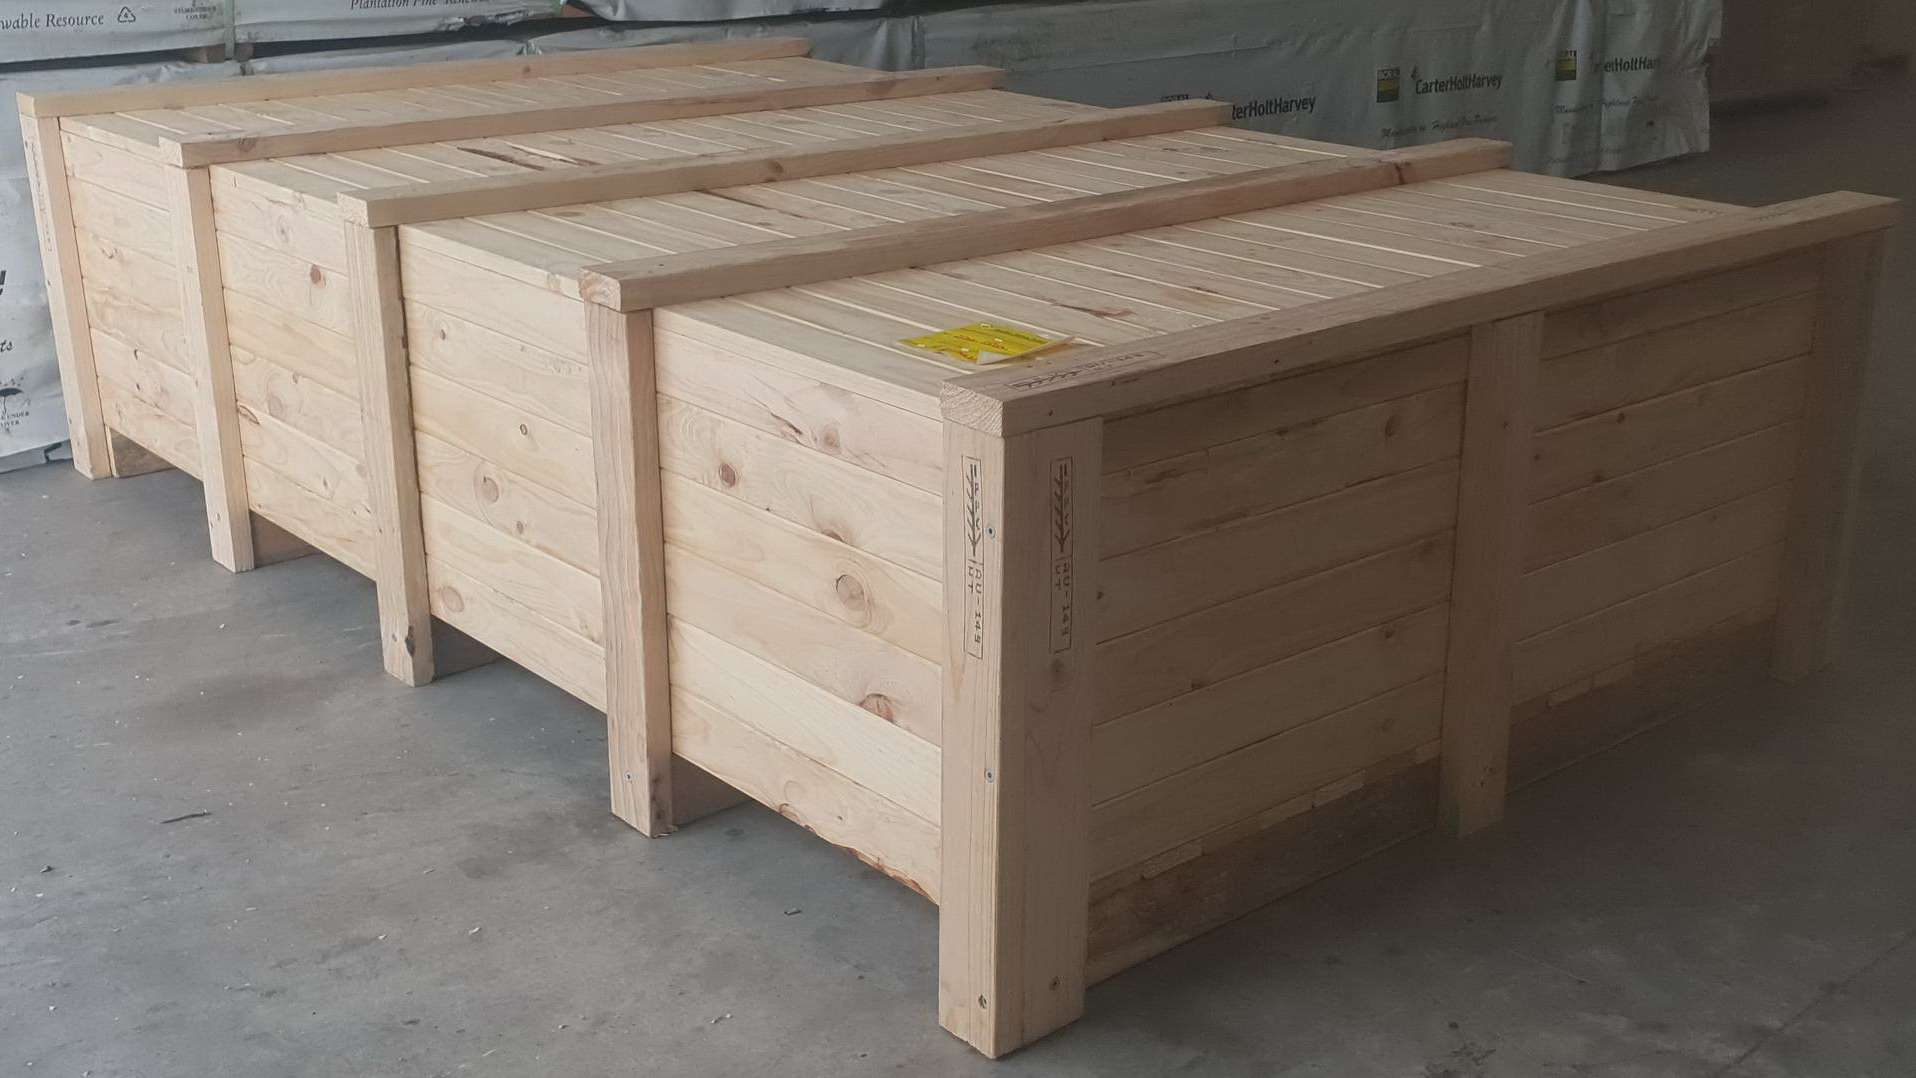 One of our timber crates in Newcastle